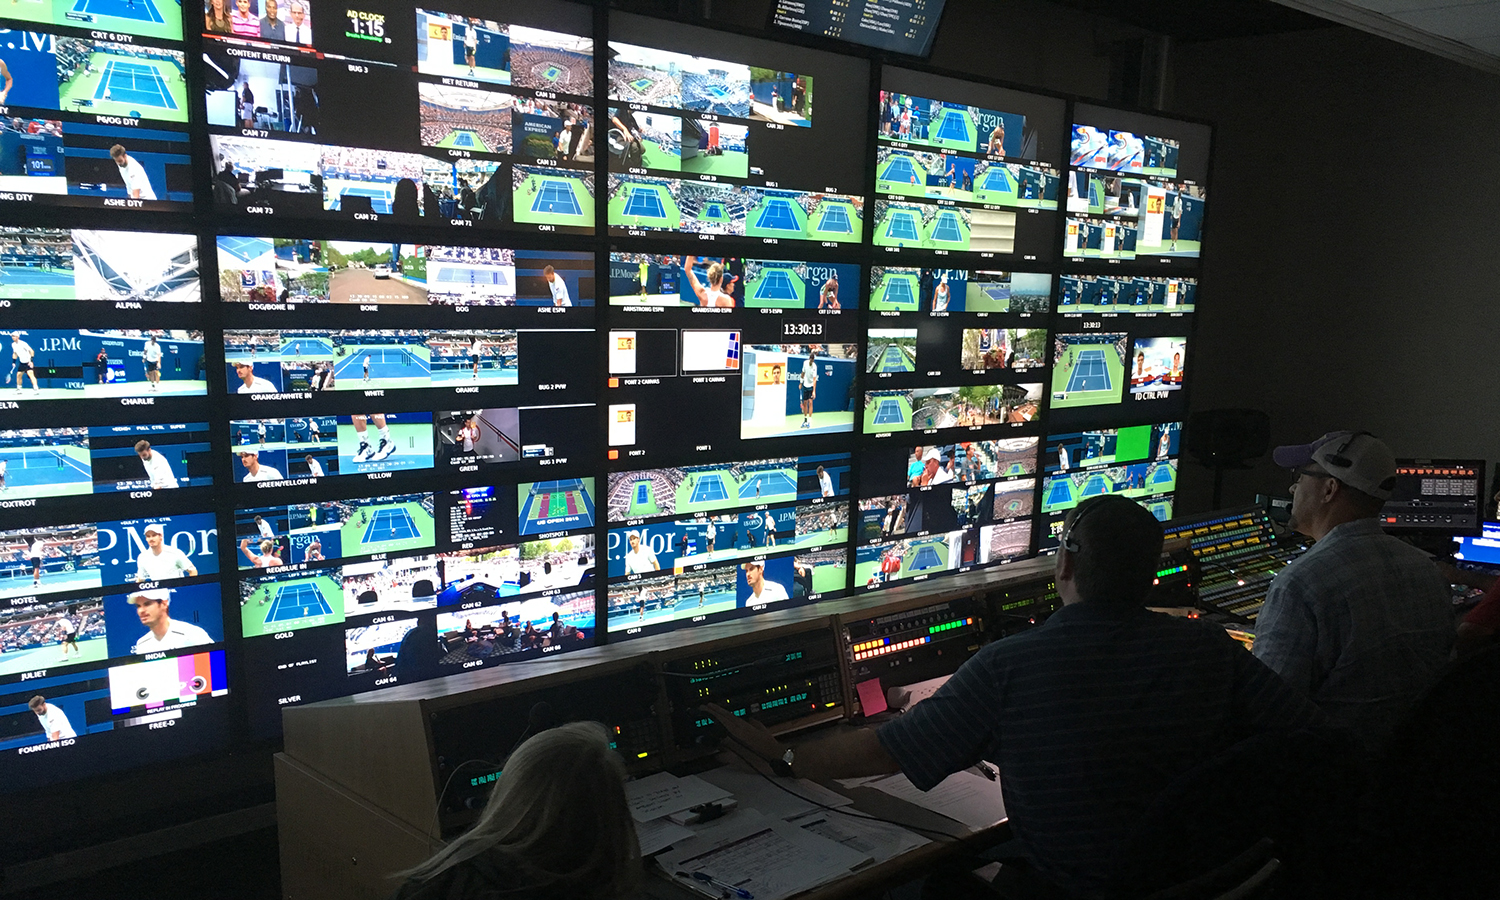 The ESPN Domestic control room